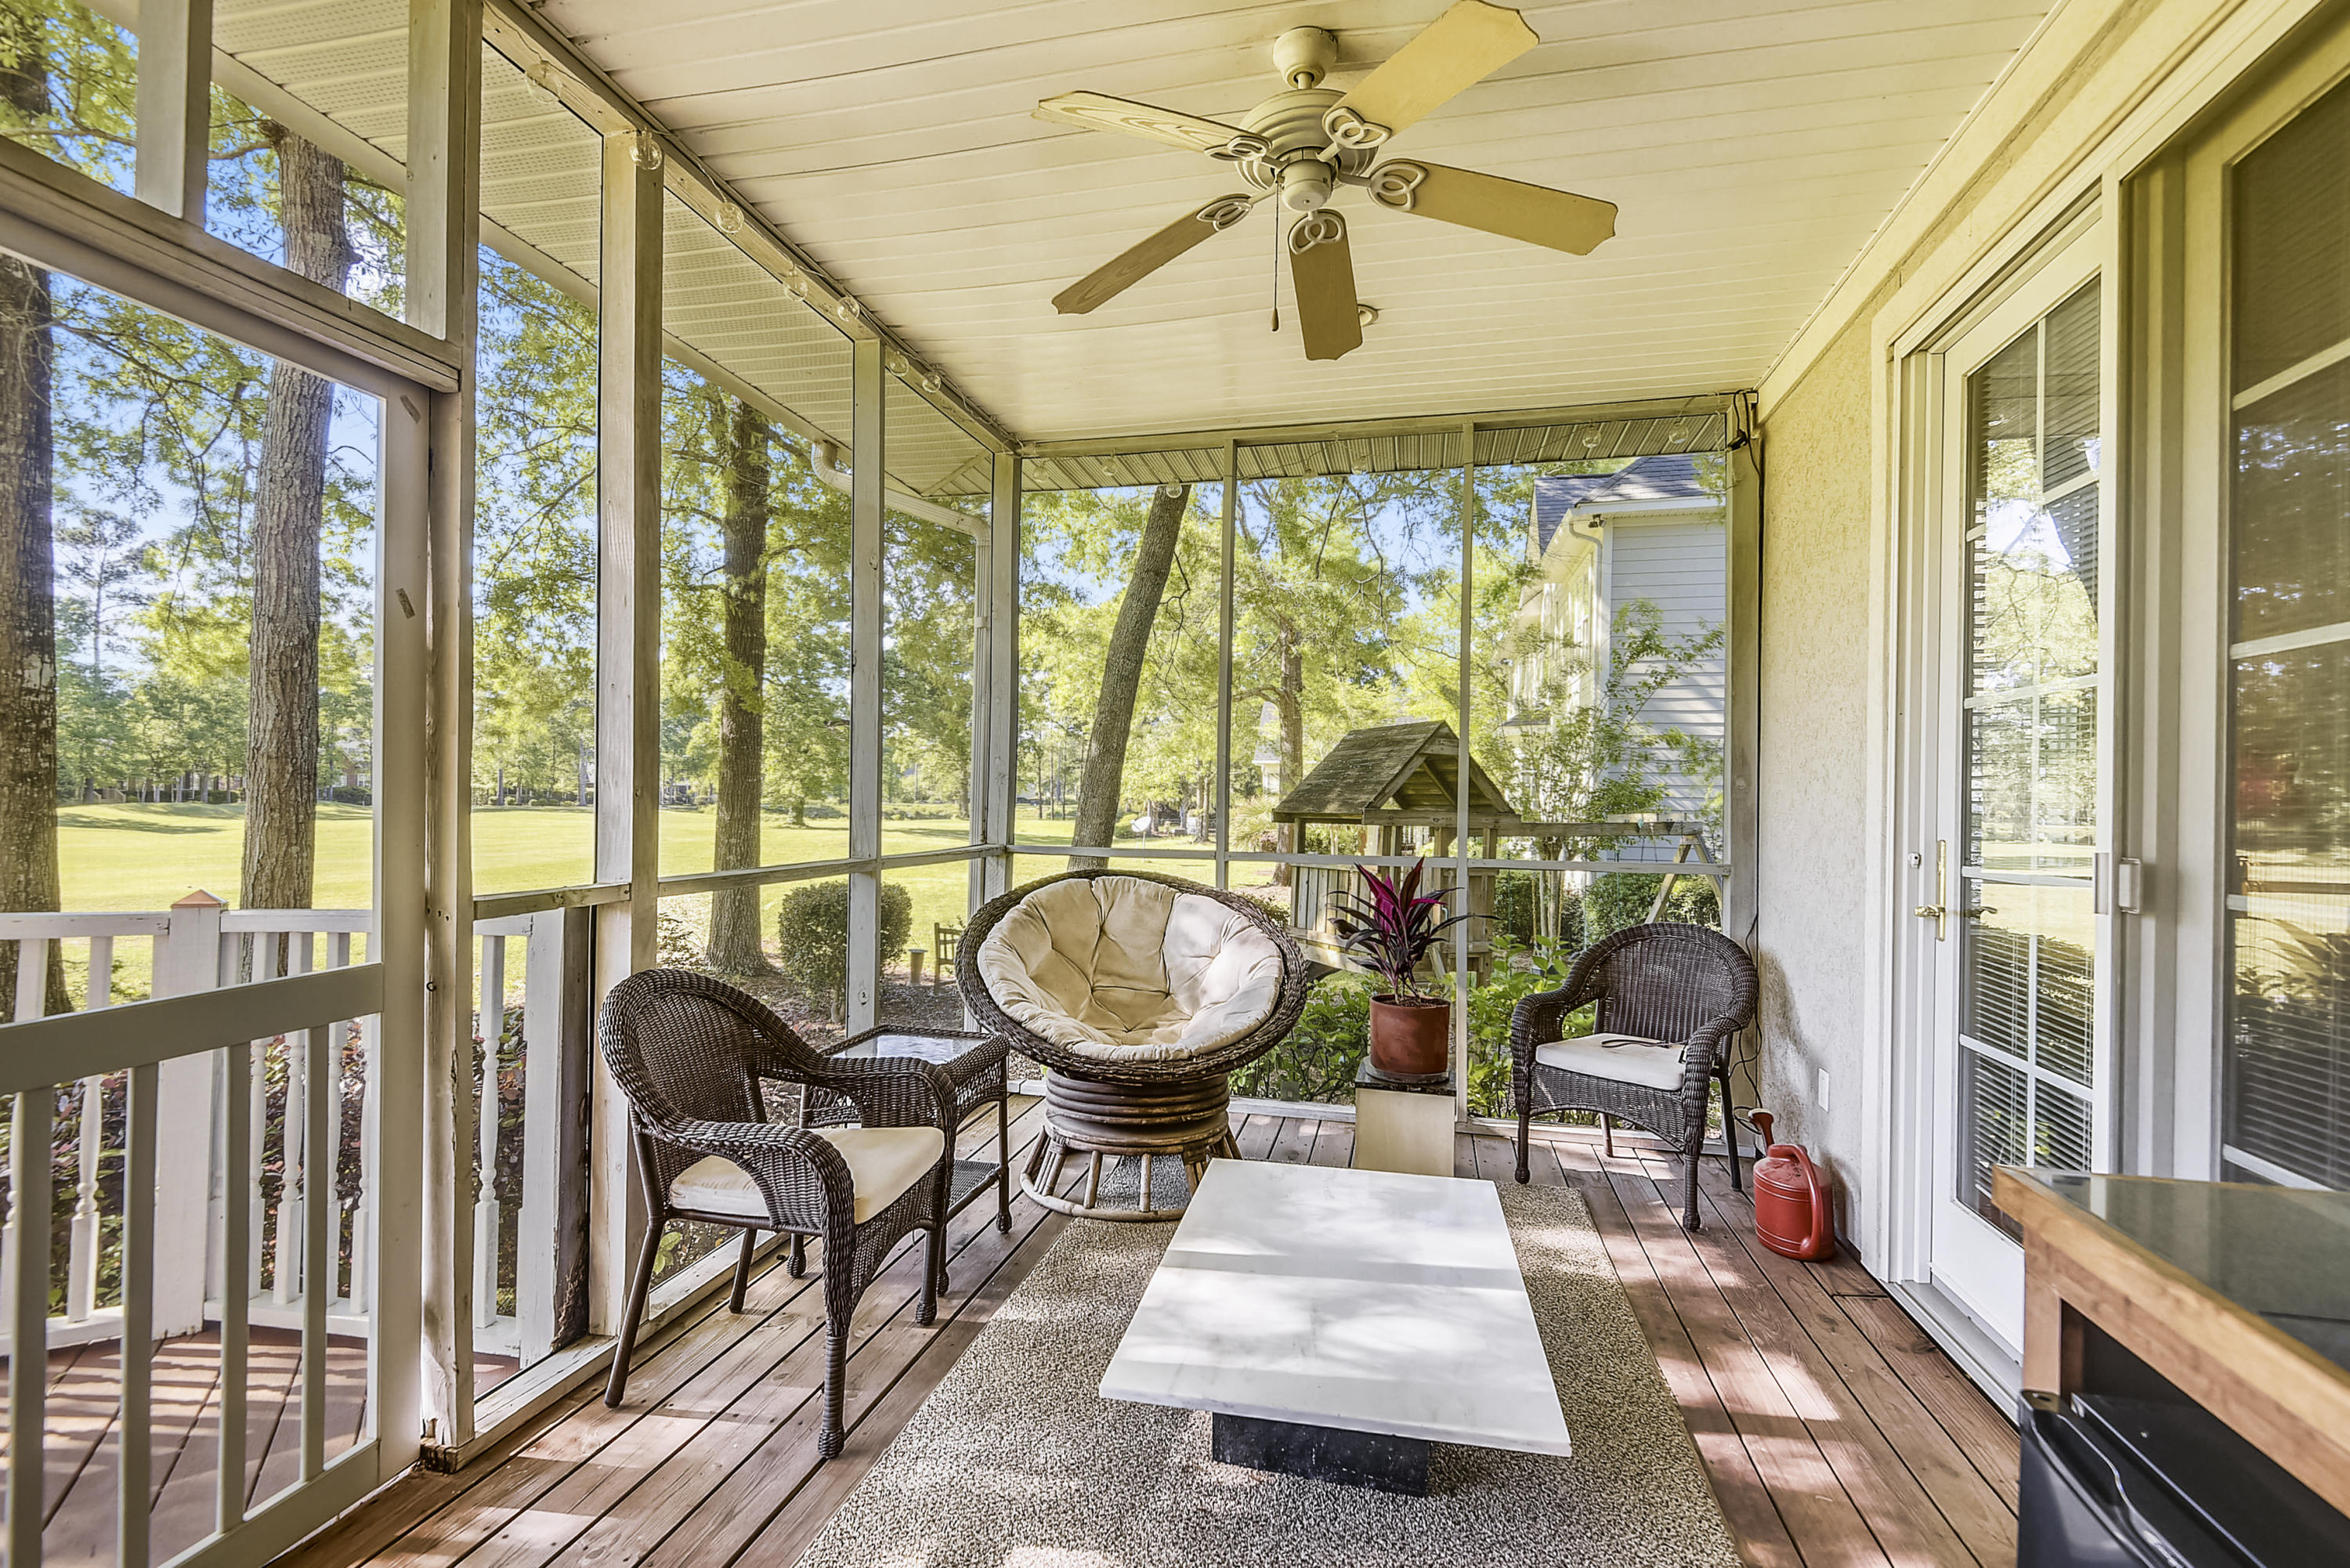 Coosaw Creek Country Club Homes For Sale - 8855 Fairway Woods, North Charleston, SC - 24